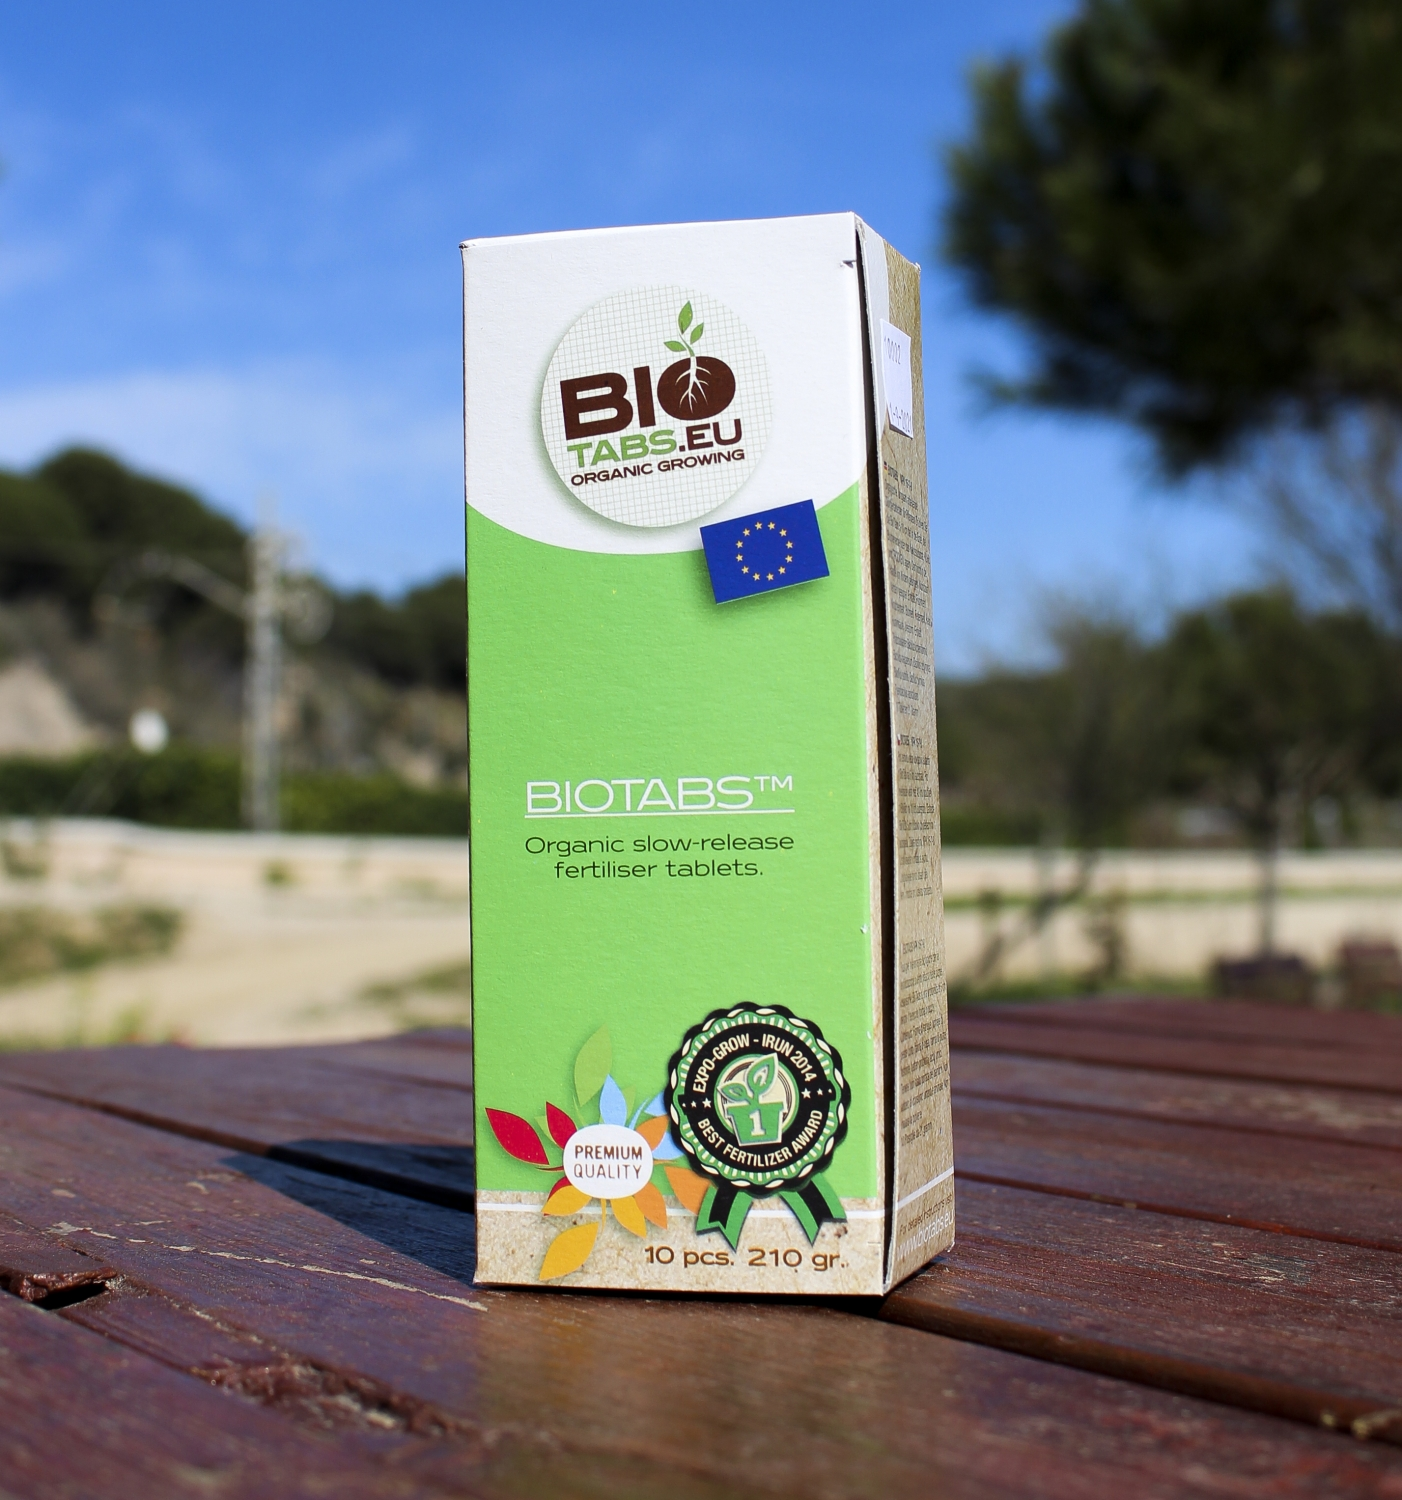 Organic Fertiliser Tablets by Bio Tabs